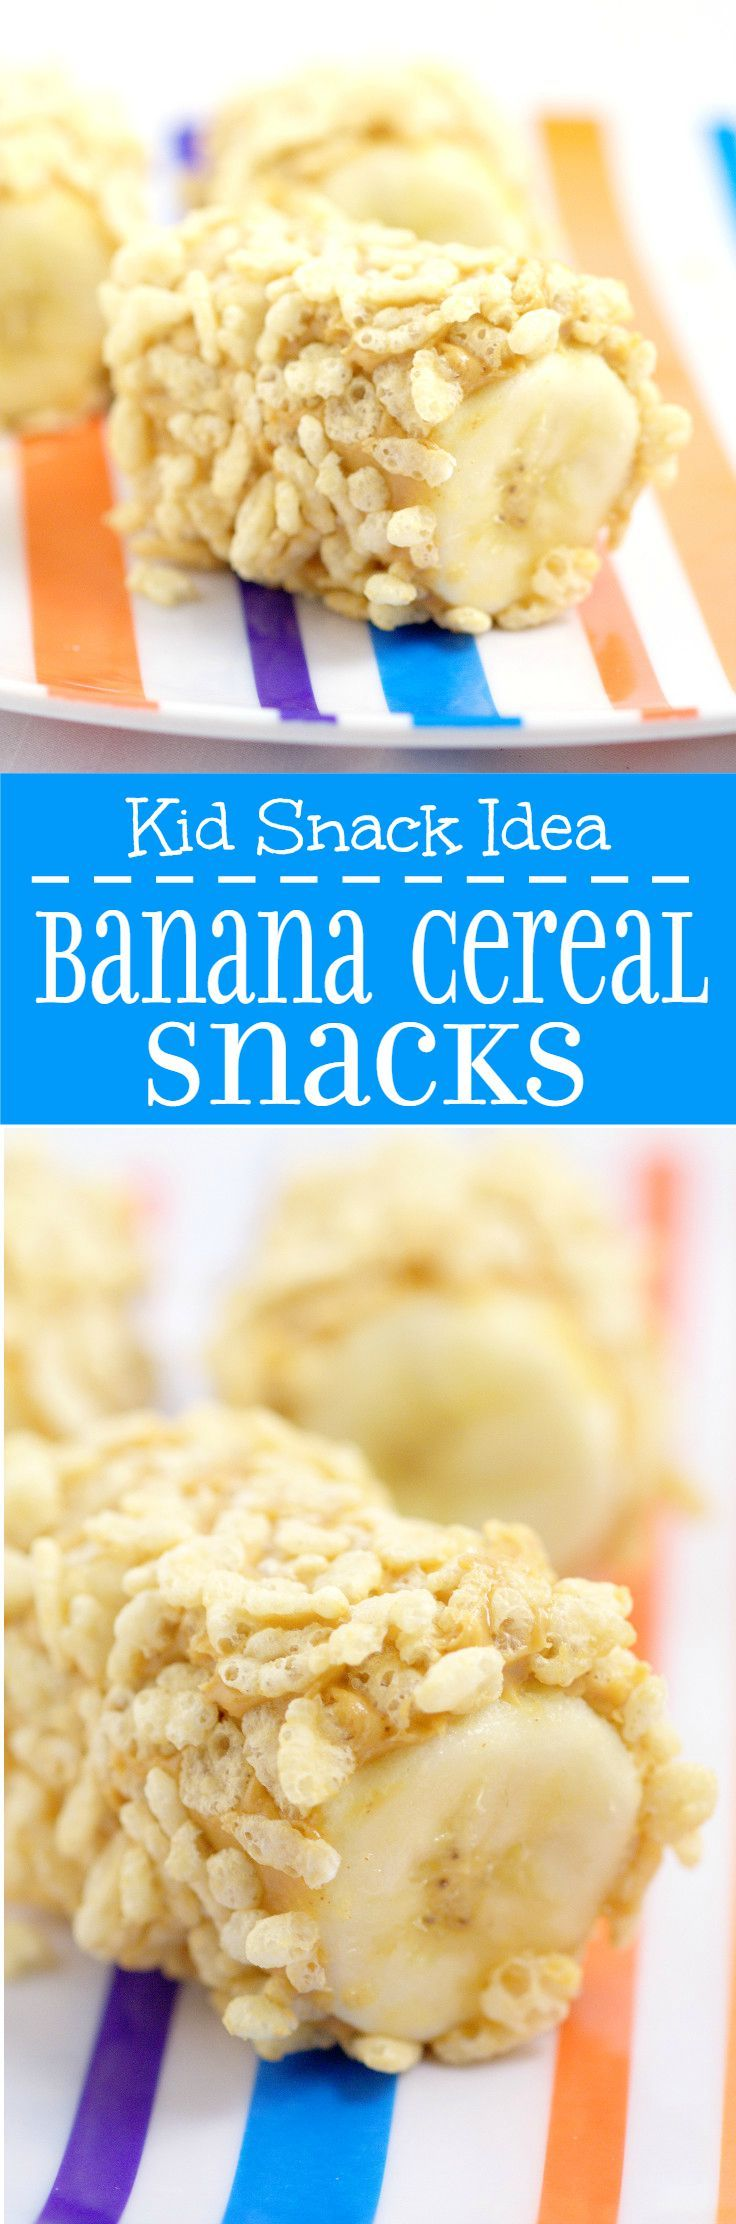 Banana cereal snacks an easy healthy snack idea for kids using banana cereal snacks an easy healthy snack idea for kids using ingredients you forumfinder Images